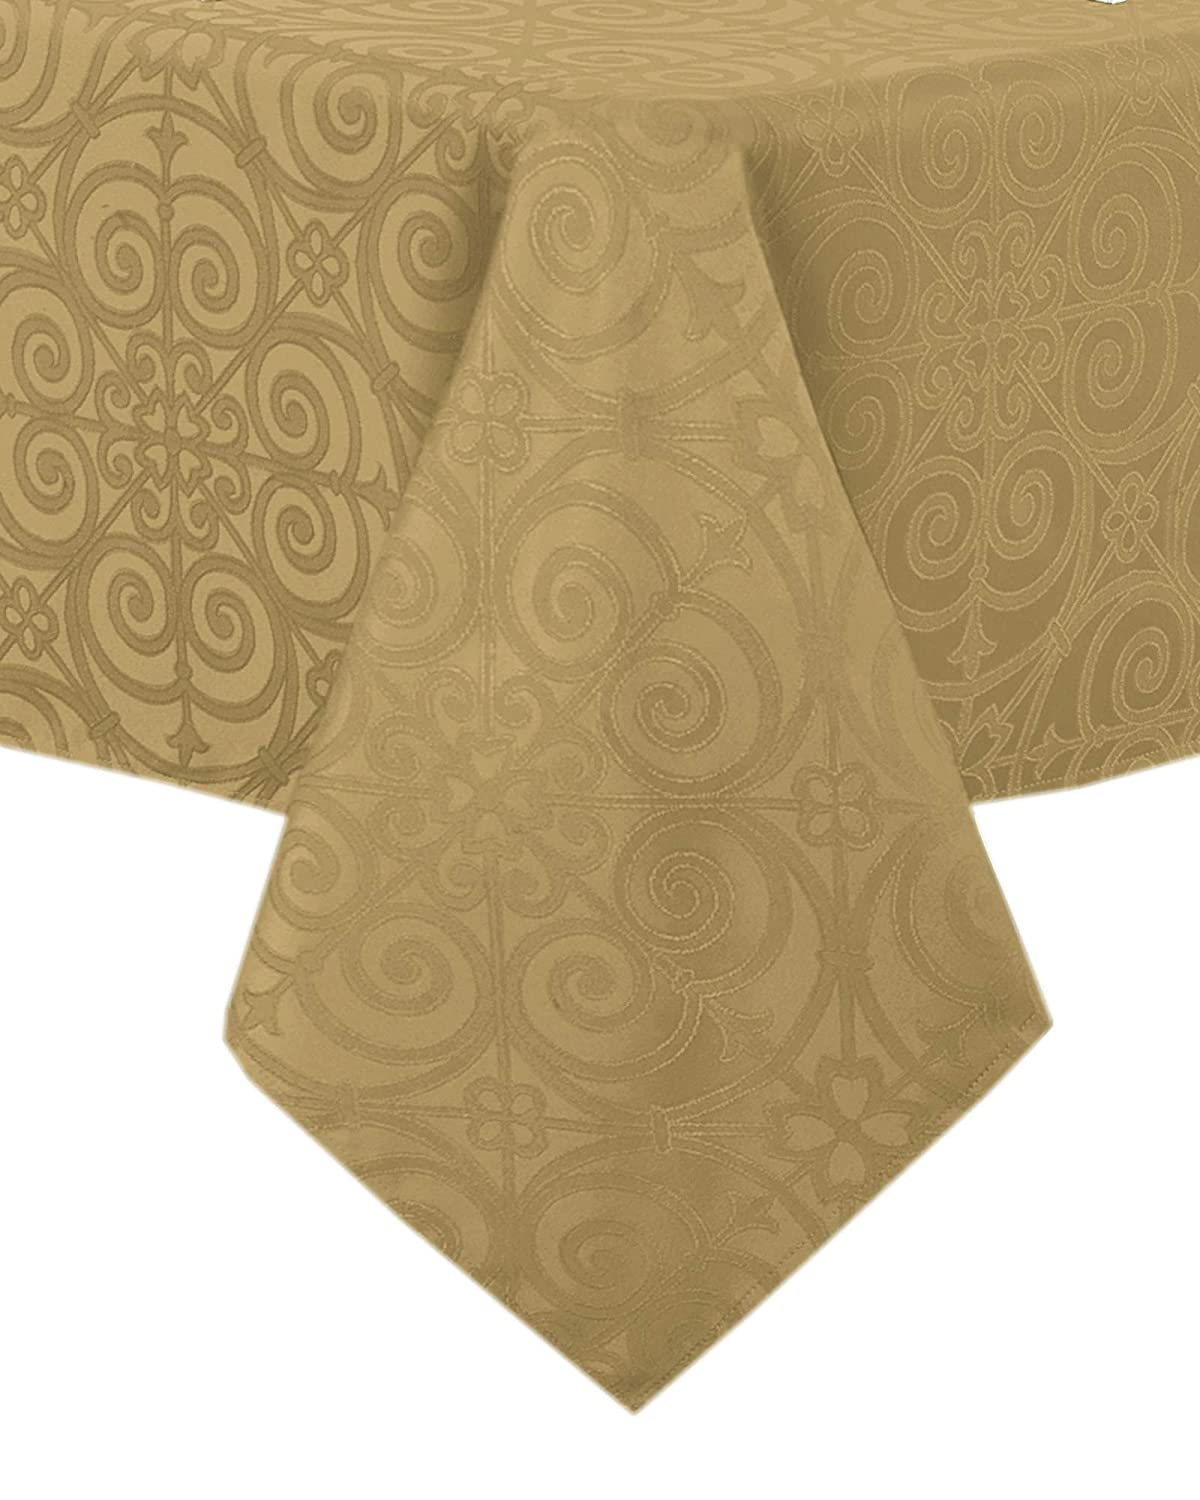 Newbridge Ironworks Scroll Damask Holiday, Thanksgiving and Christmas Fabric Tablecloth, Contemporary Damask Soil Resistant, No Iron Tablecloth, 60 Inch x 84 Inch Oblong/Rectangle, Gold